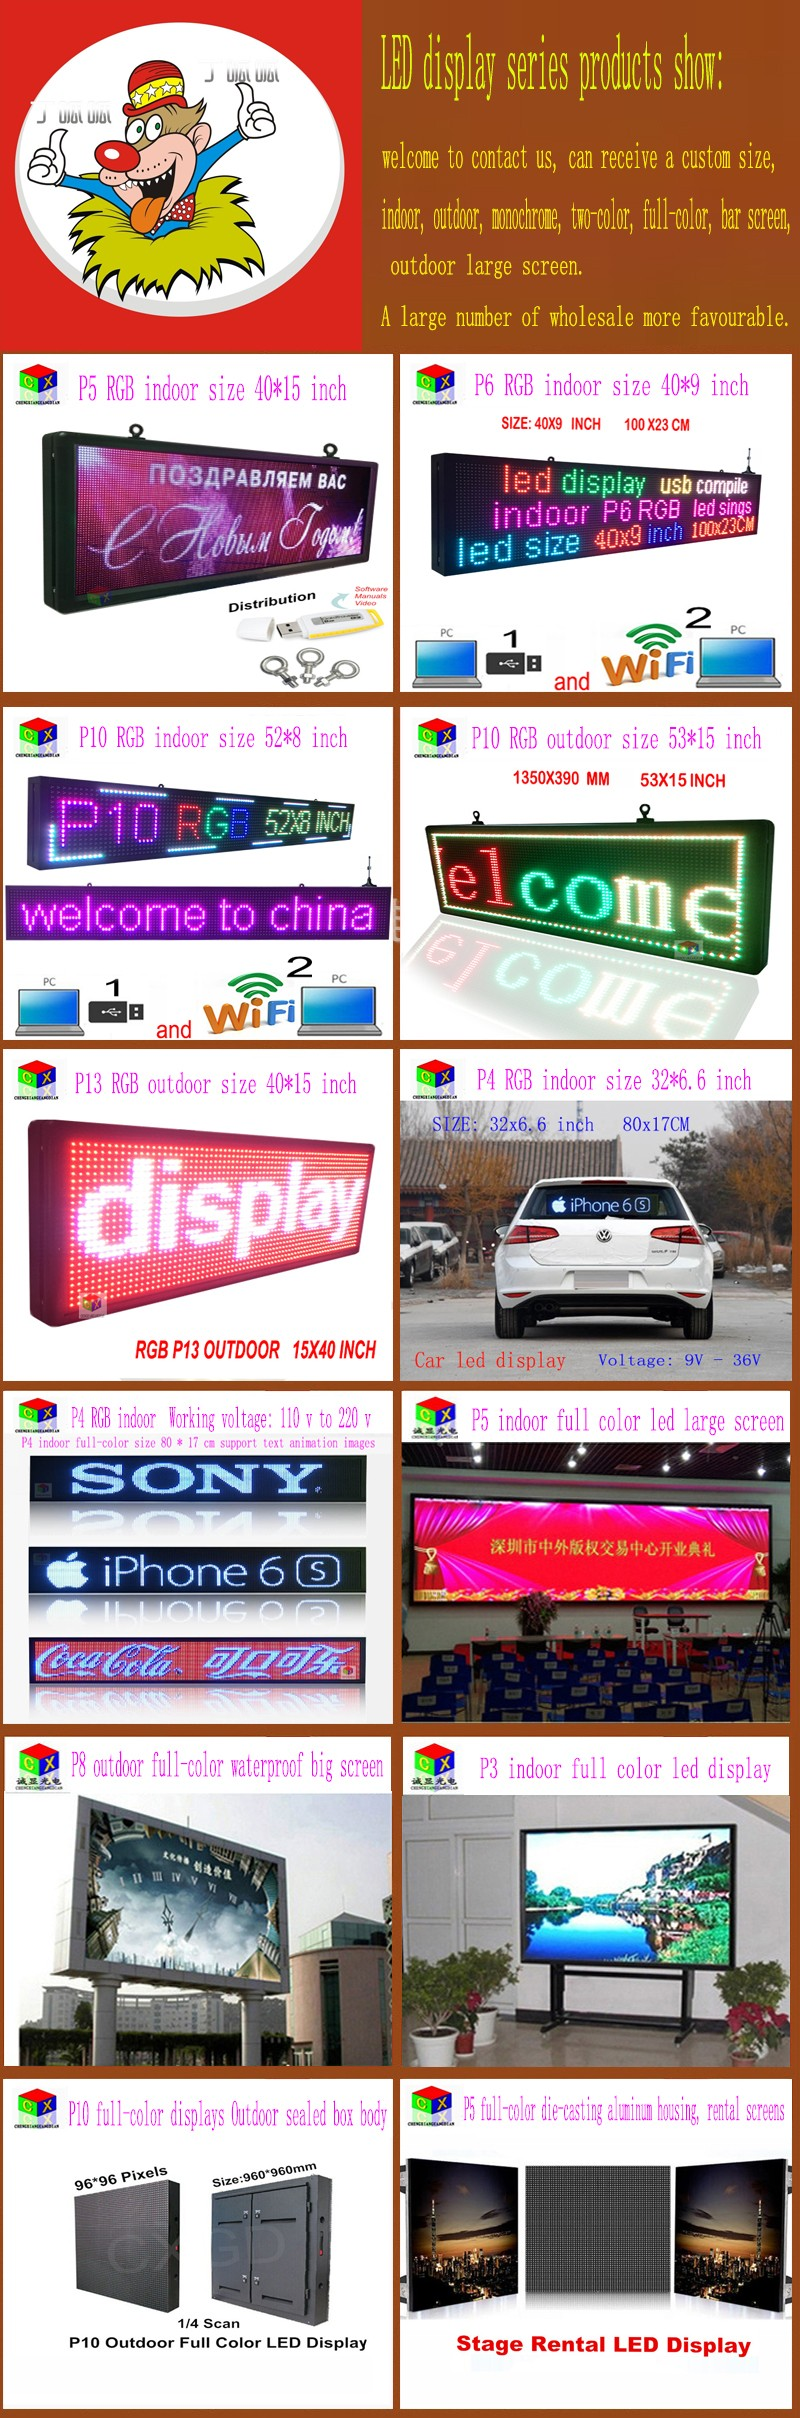 MRV300 Q full-color LED display controller card supports synchronous receiver / Nova reception card